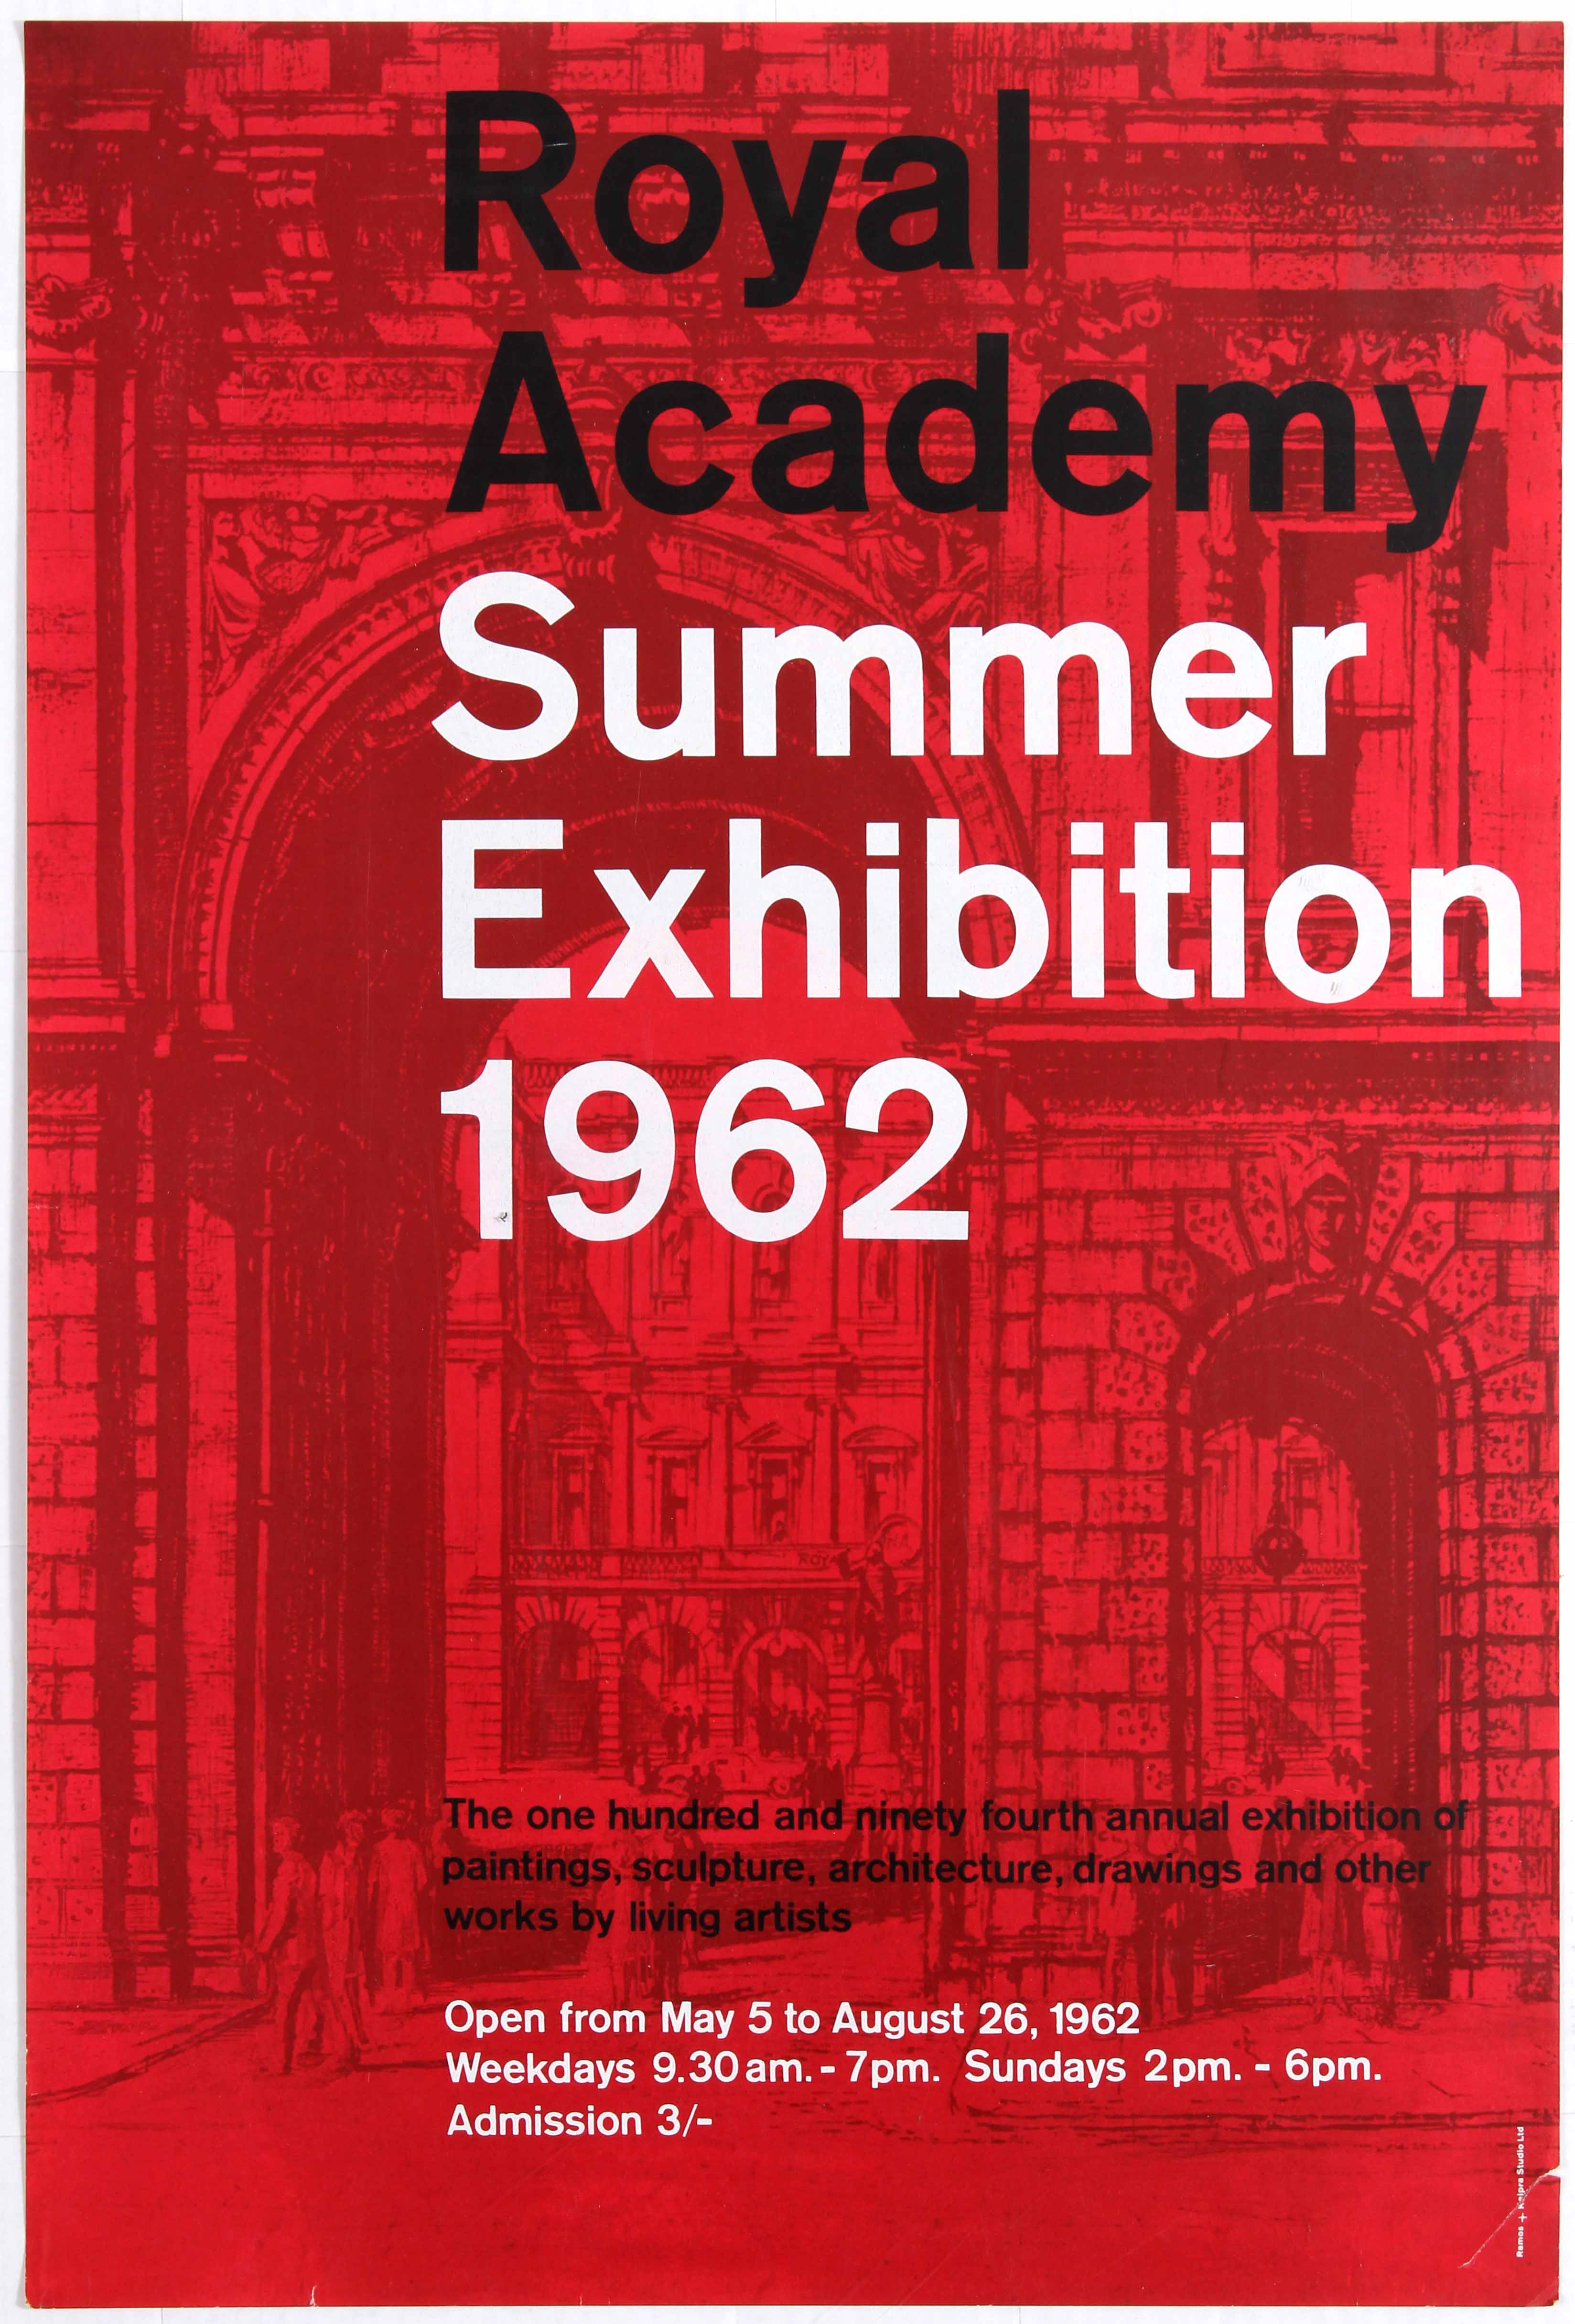 Advertising Poster Royal Academy Summer Exhibition 1962.